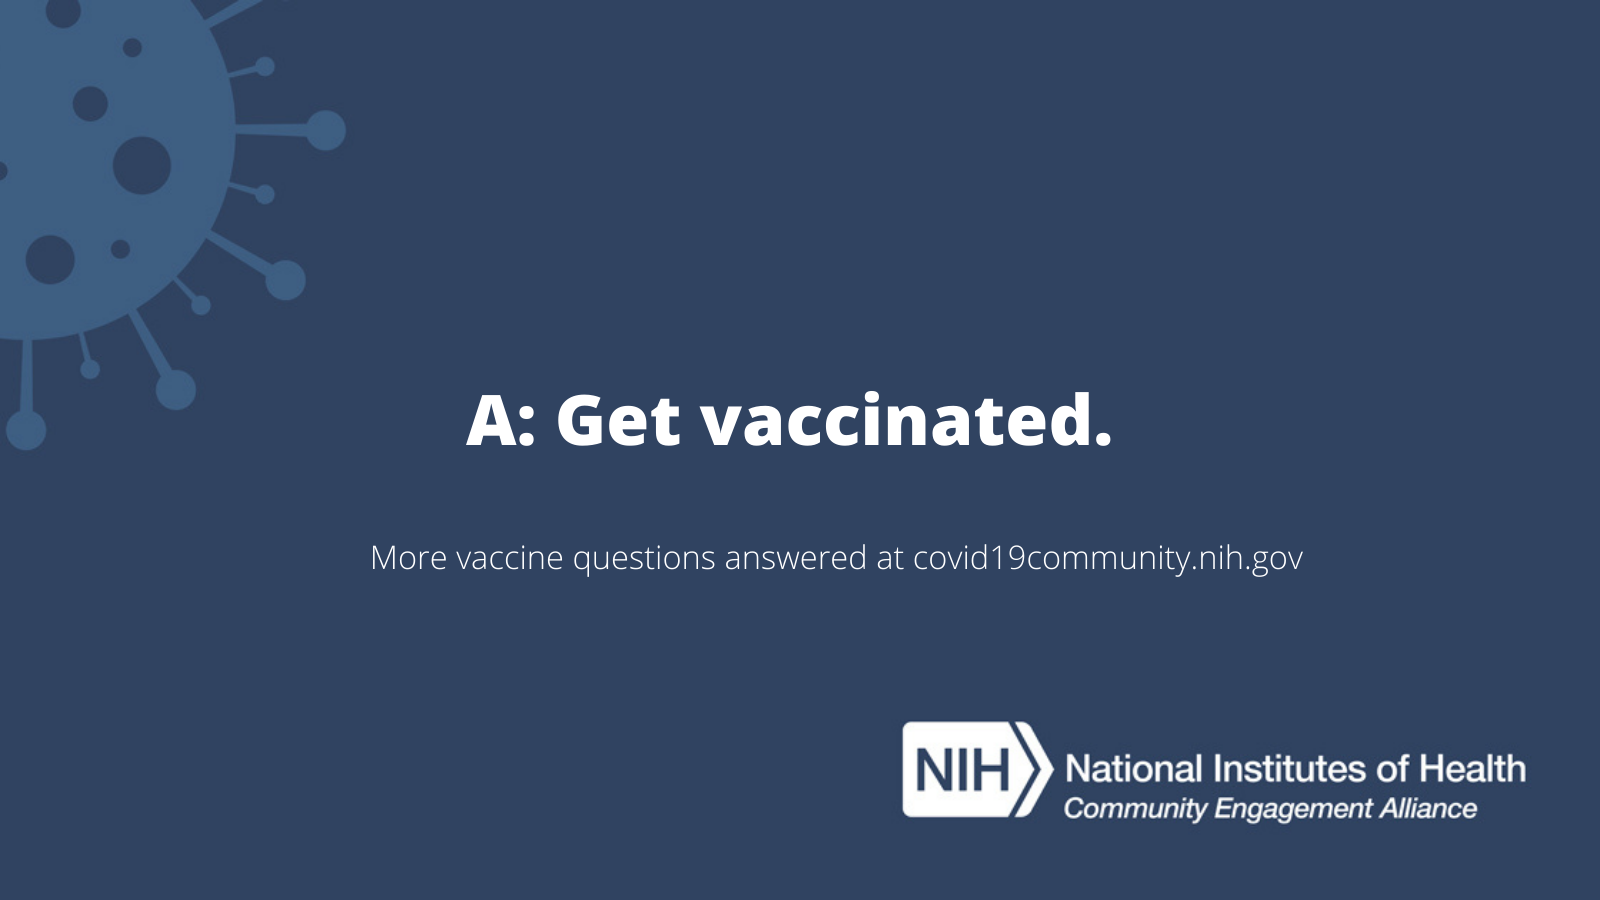 A: Get vaccinated. More vaccine questions answered at covid19community.nih.gov